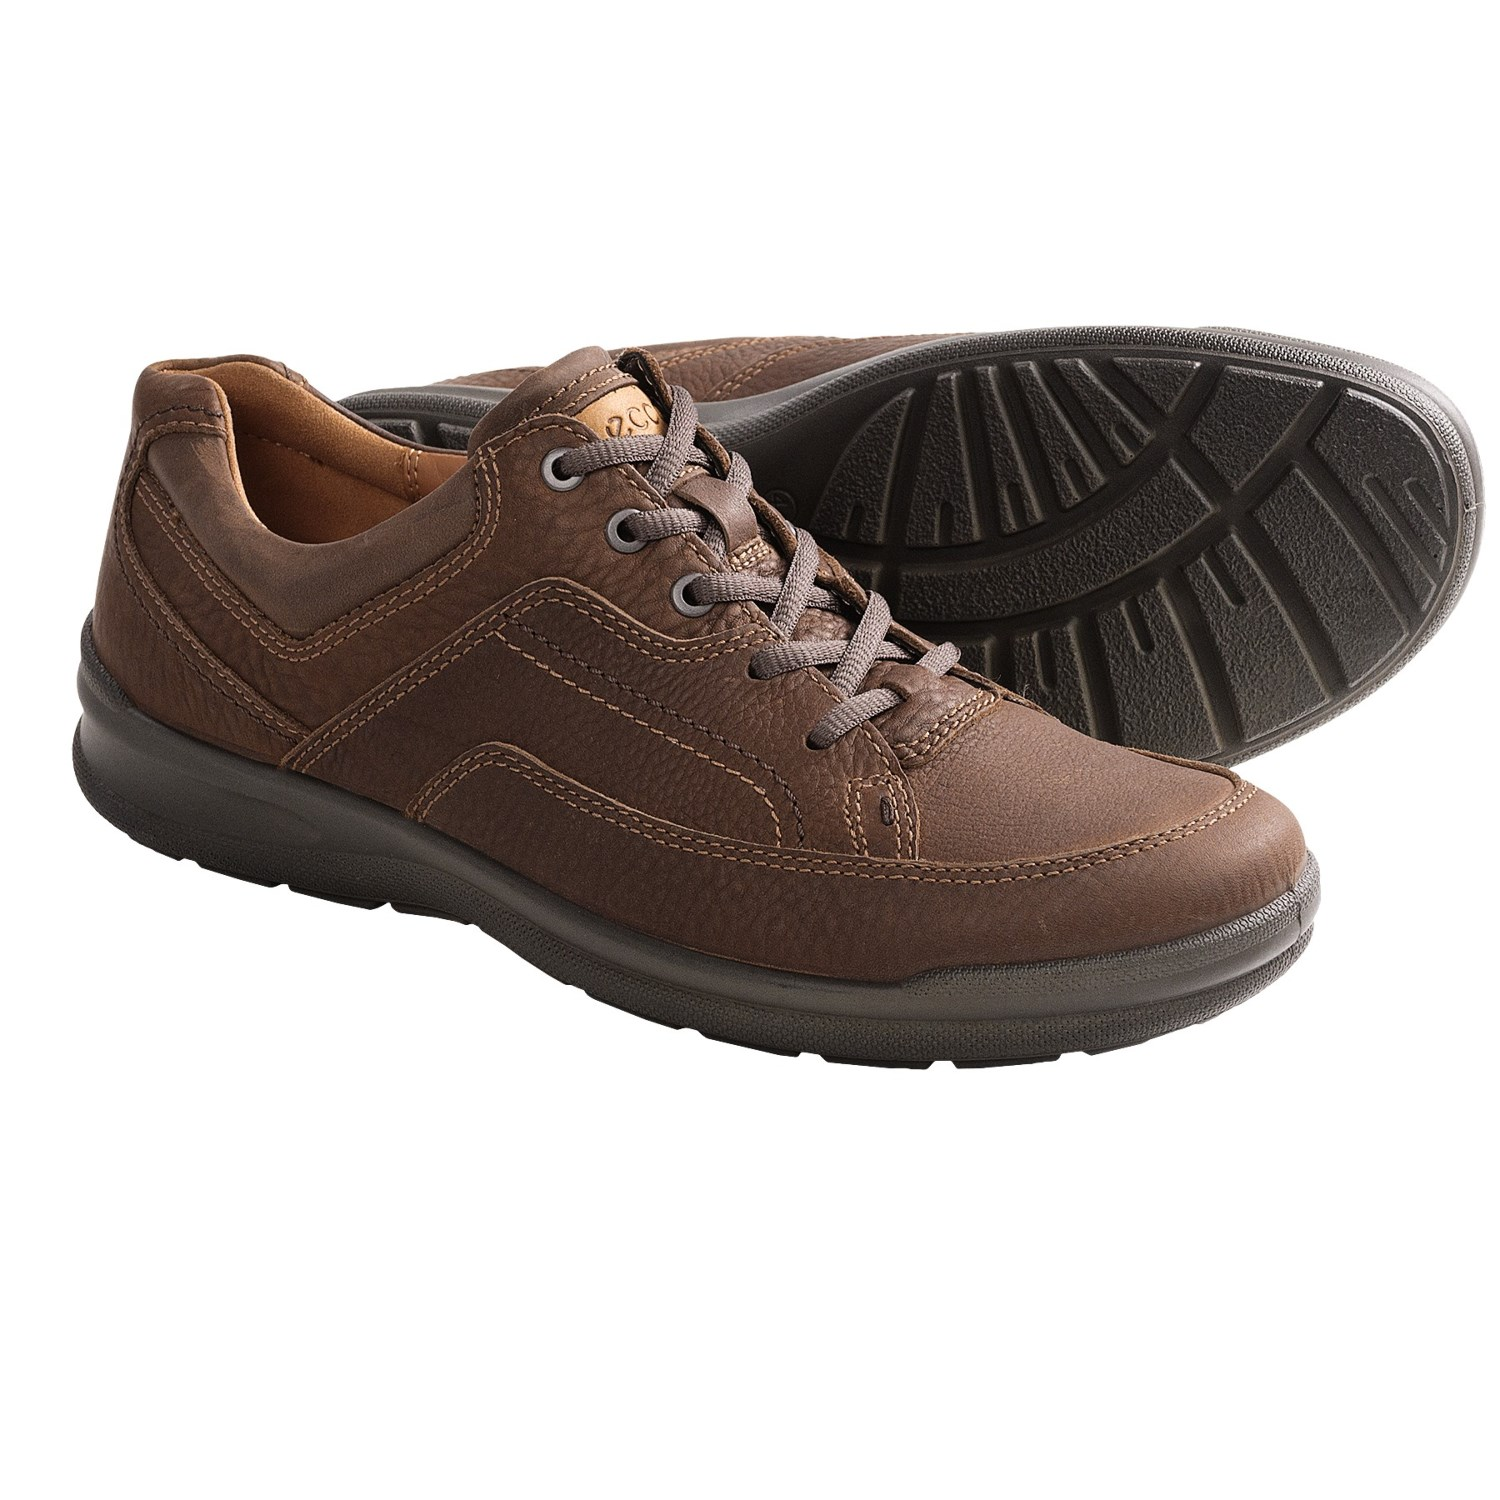 ecco remote shoes for save 25